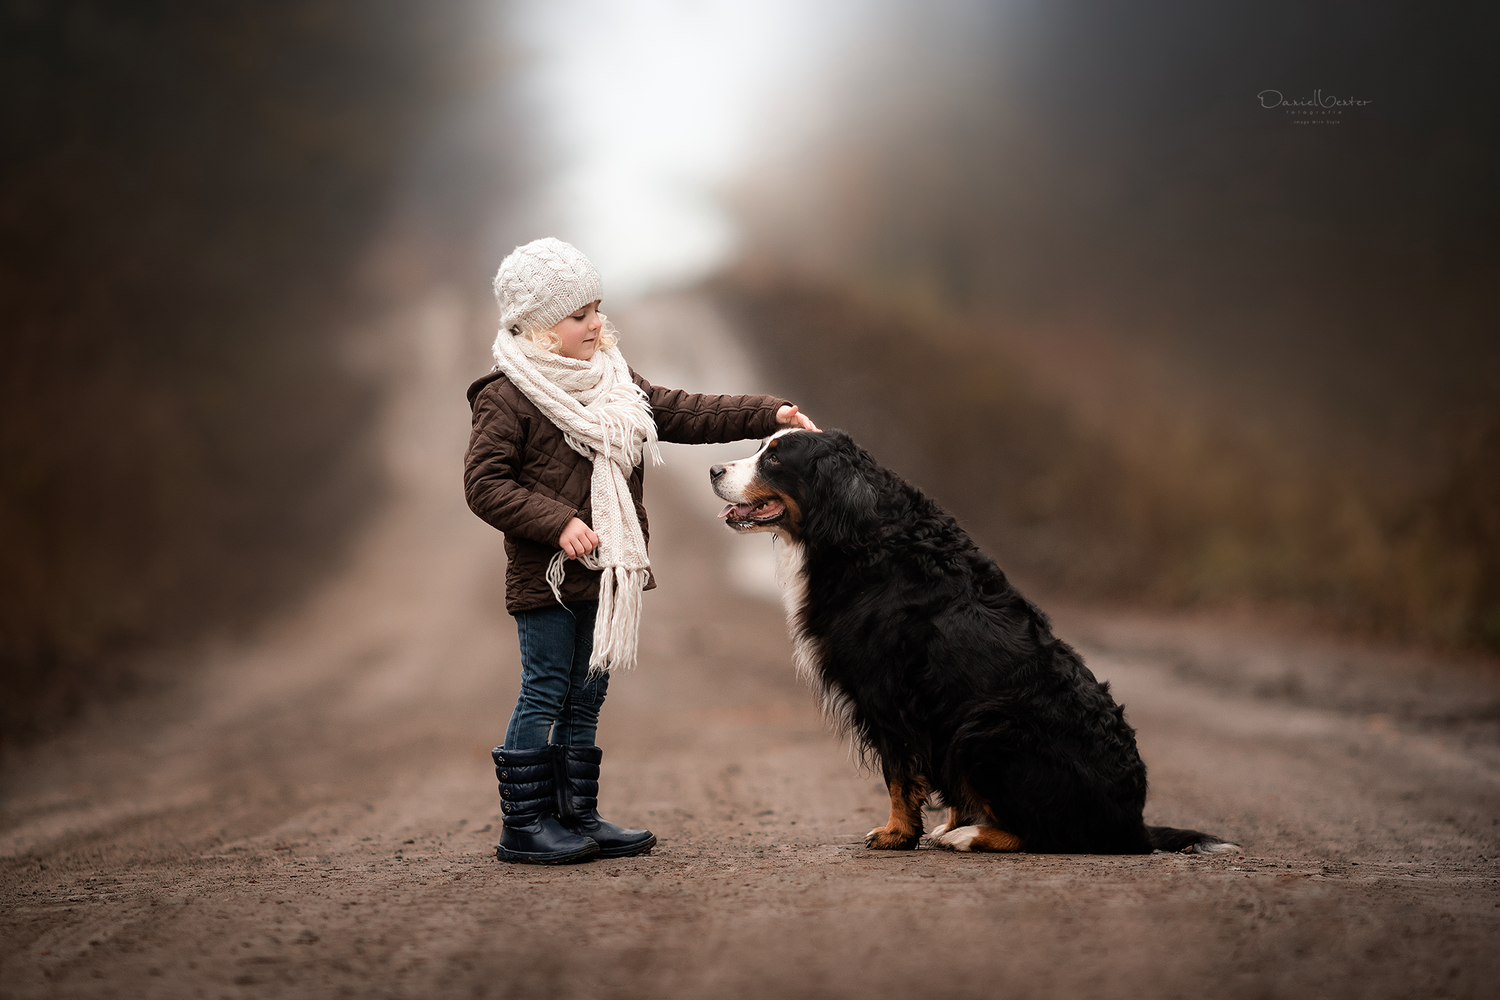 Marley and Me by Daniel Venter